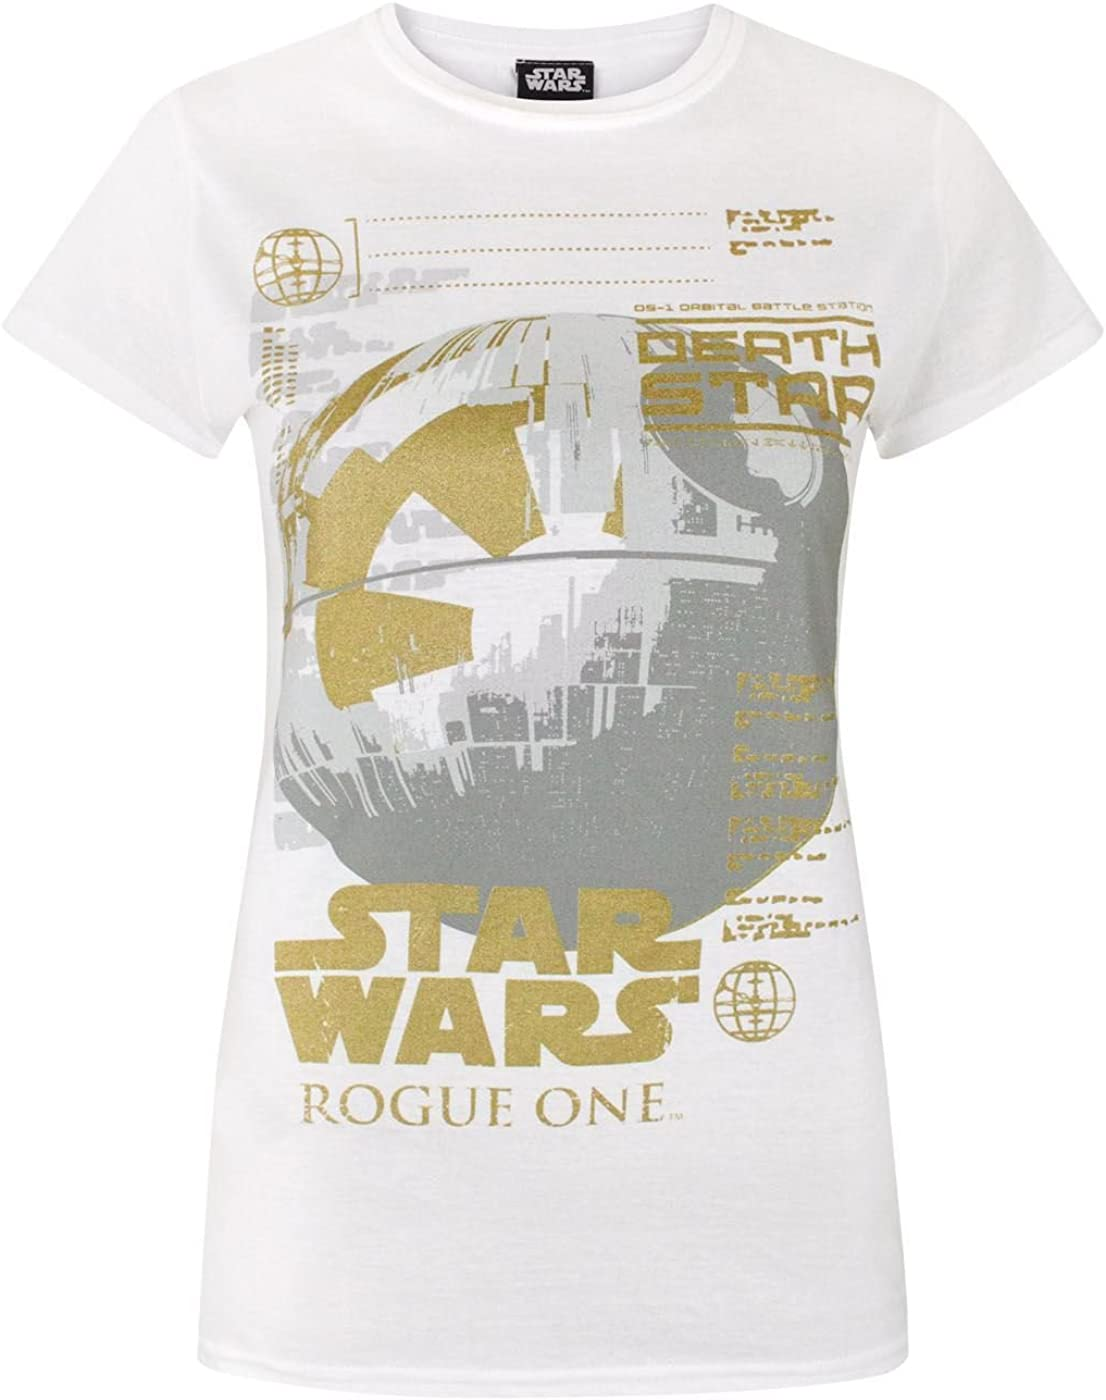 Star Wars Rogue One Metallic Death Star Womens T-Shirt